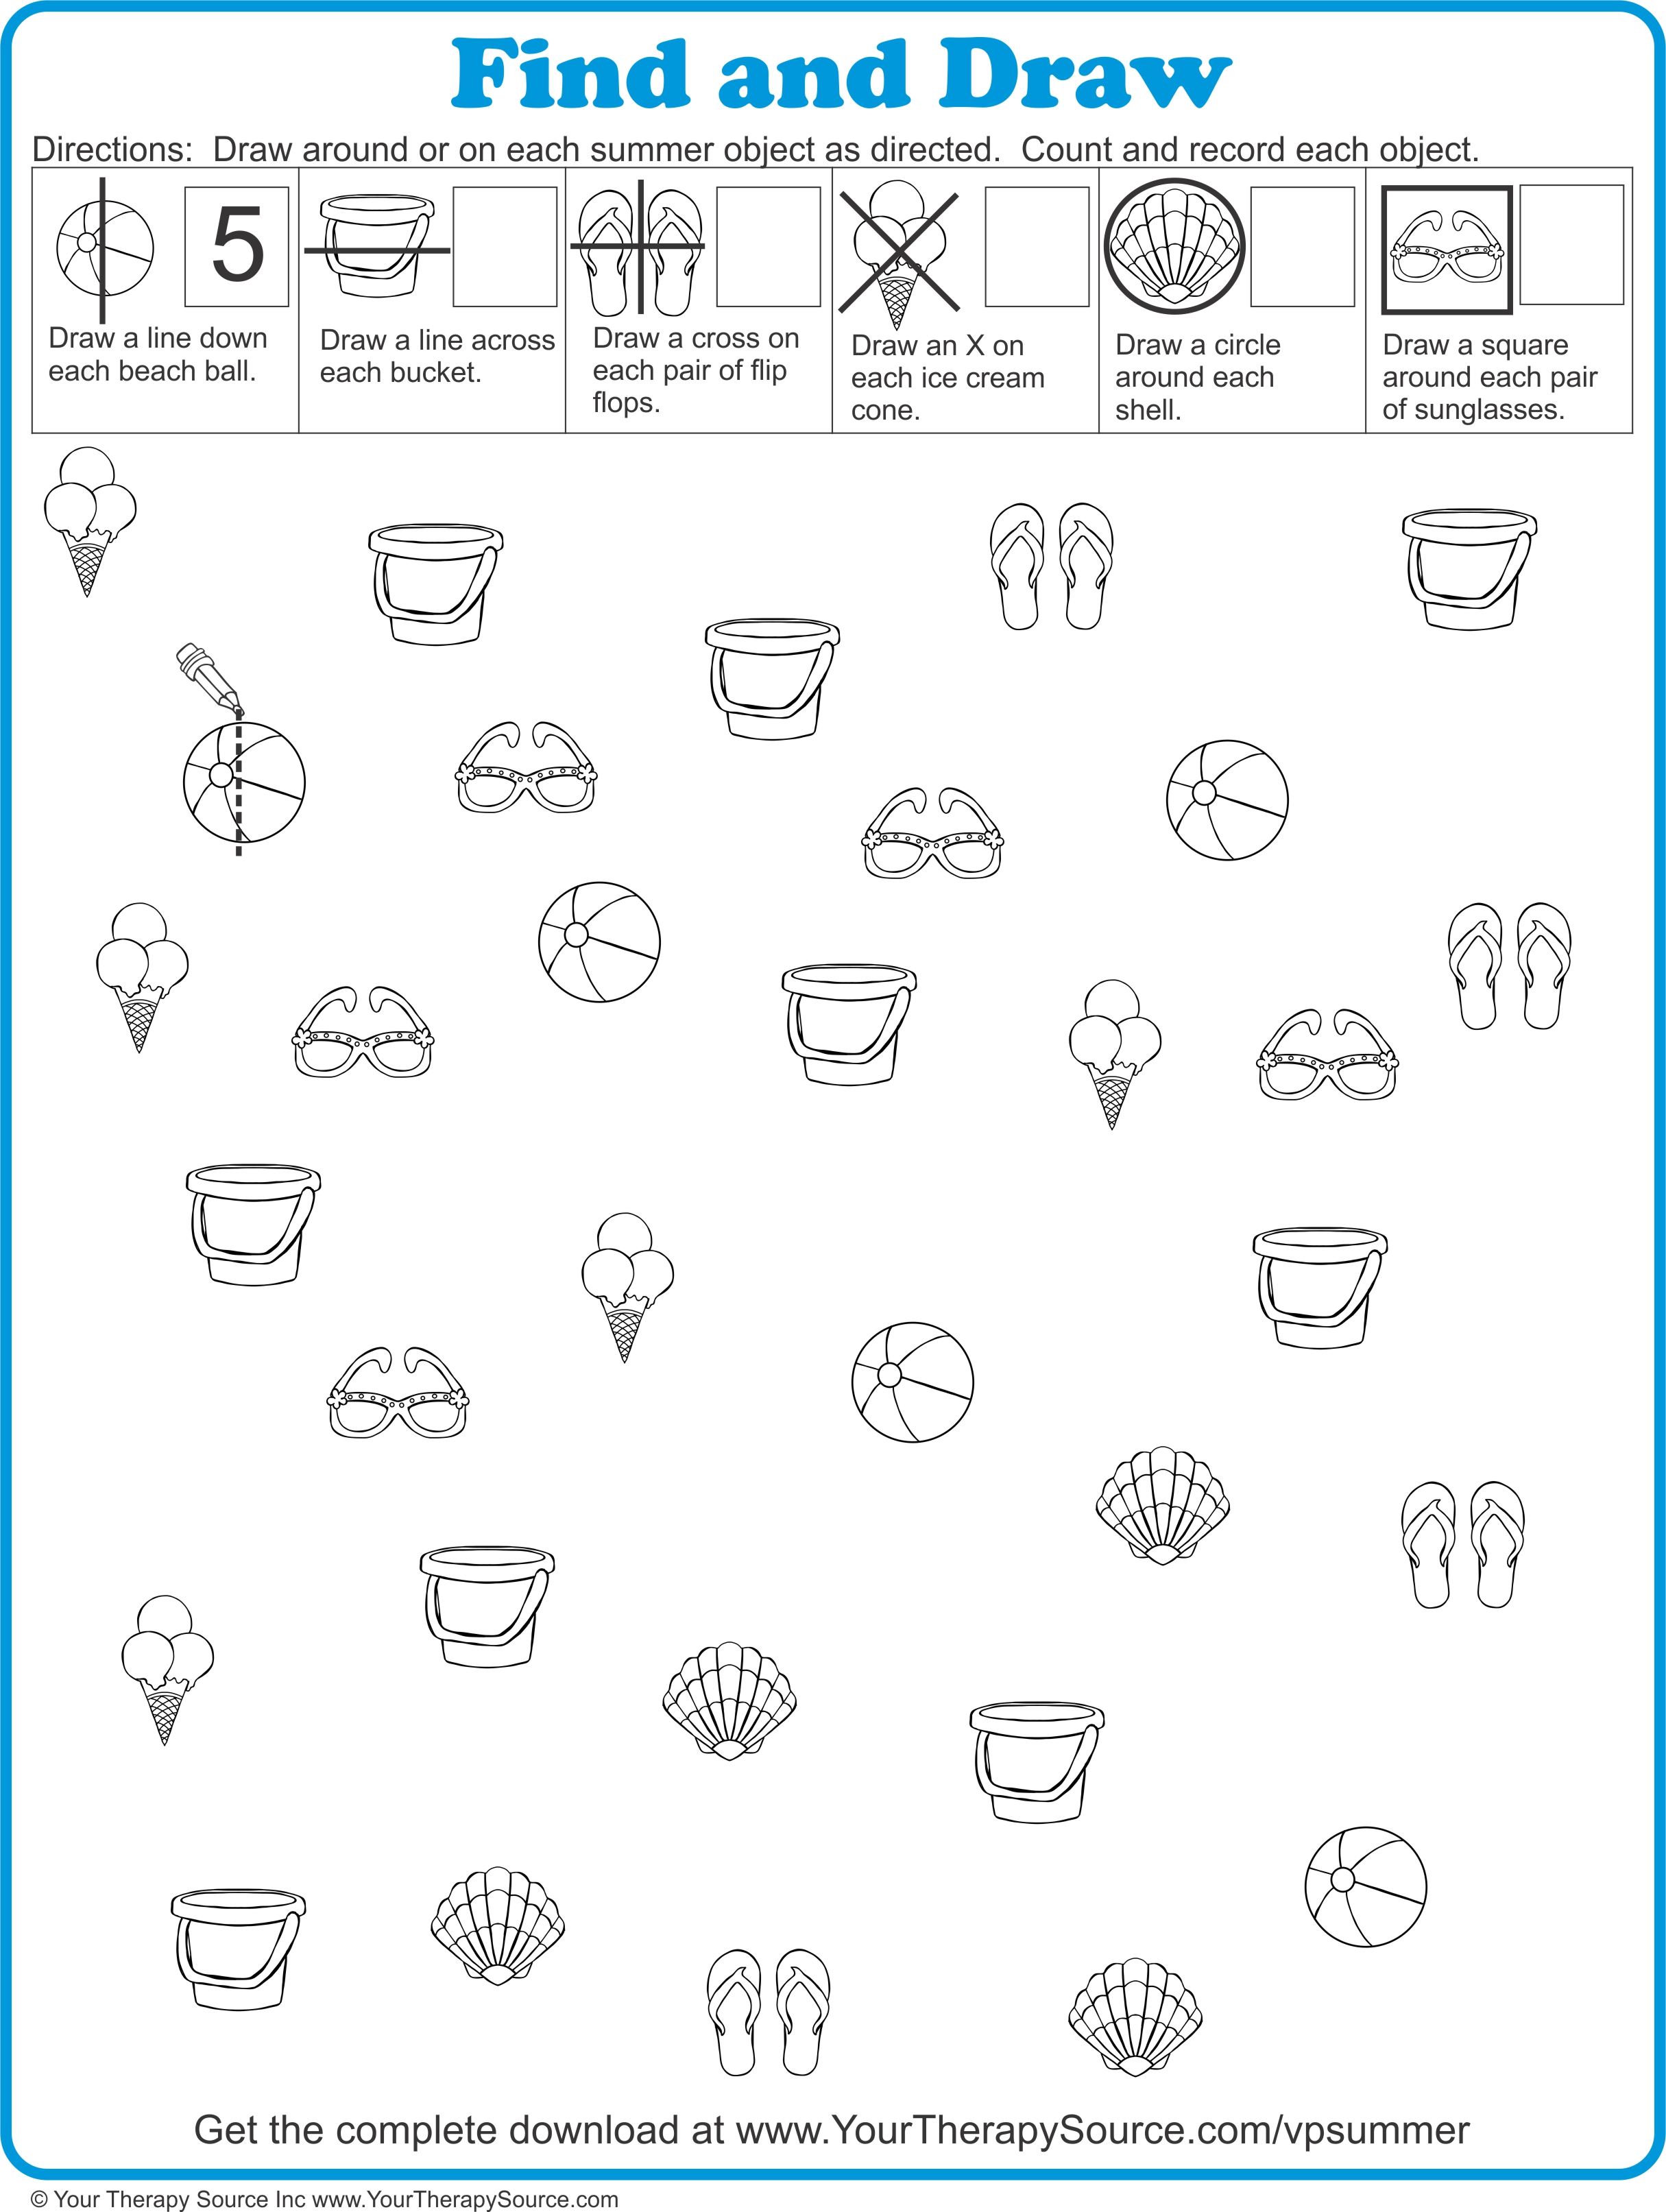 Summer Visual Perceptual Puzzle from https://yourtherapysource.com/vpsummerfreebie.html